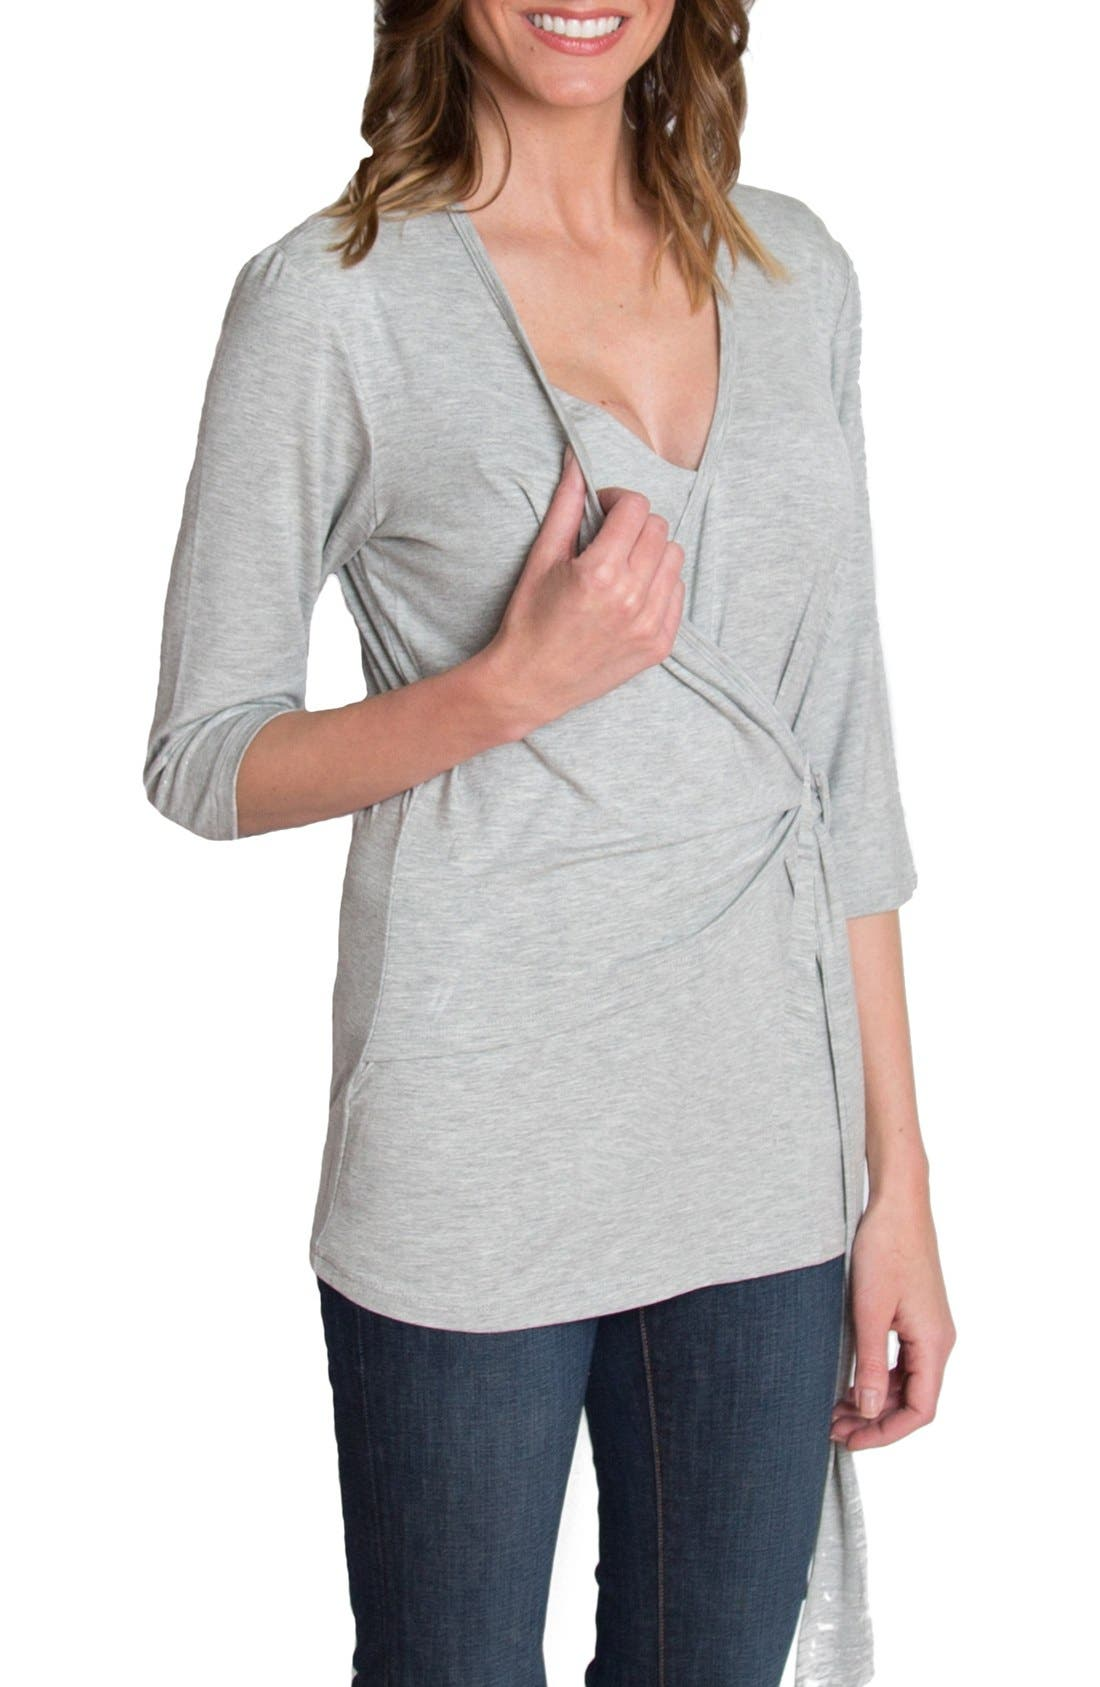 Whimsical Nursing Wrap Top,                             Alternate thumbnail 4, color,                             HEATHER GRAY